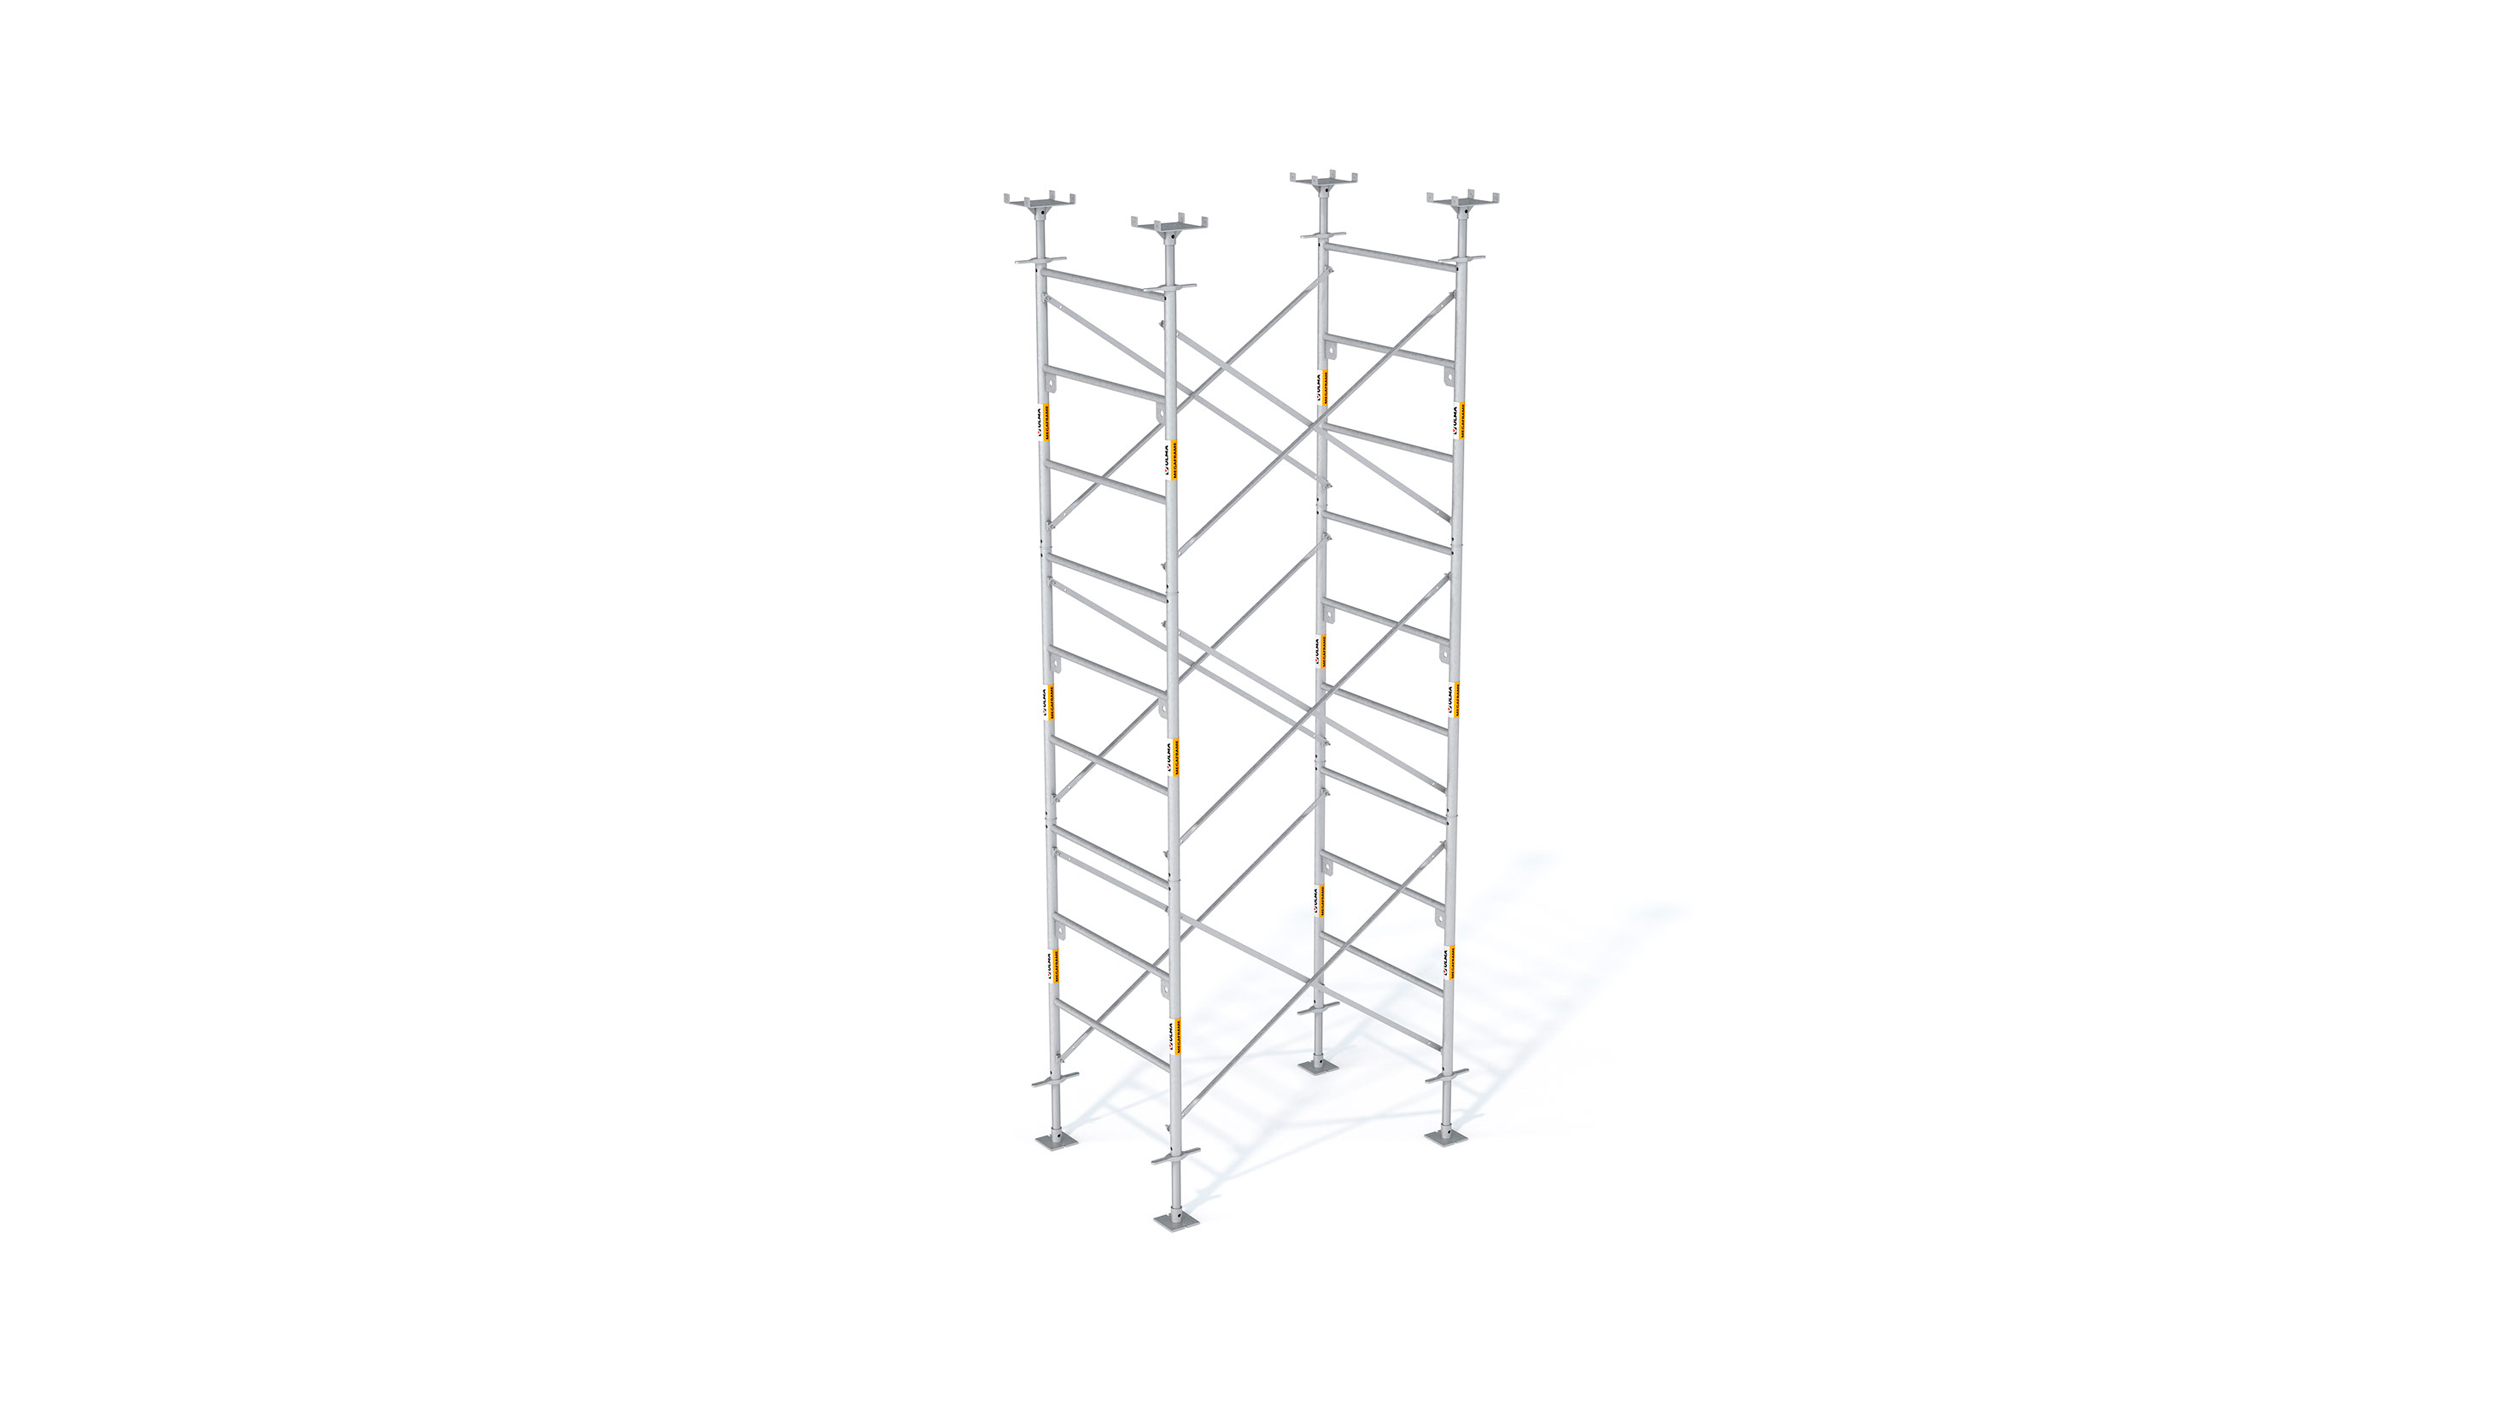 Galvanized steel frame handset shoring system, used on a great variety of construction projects.